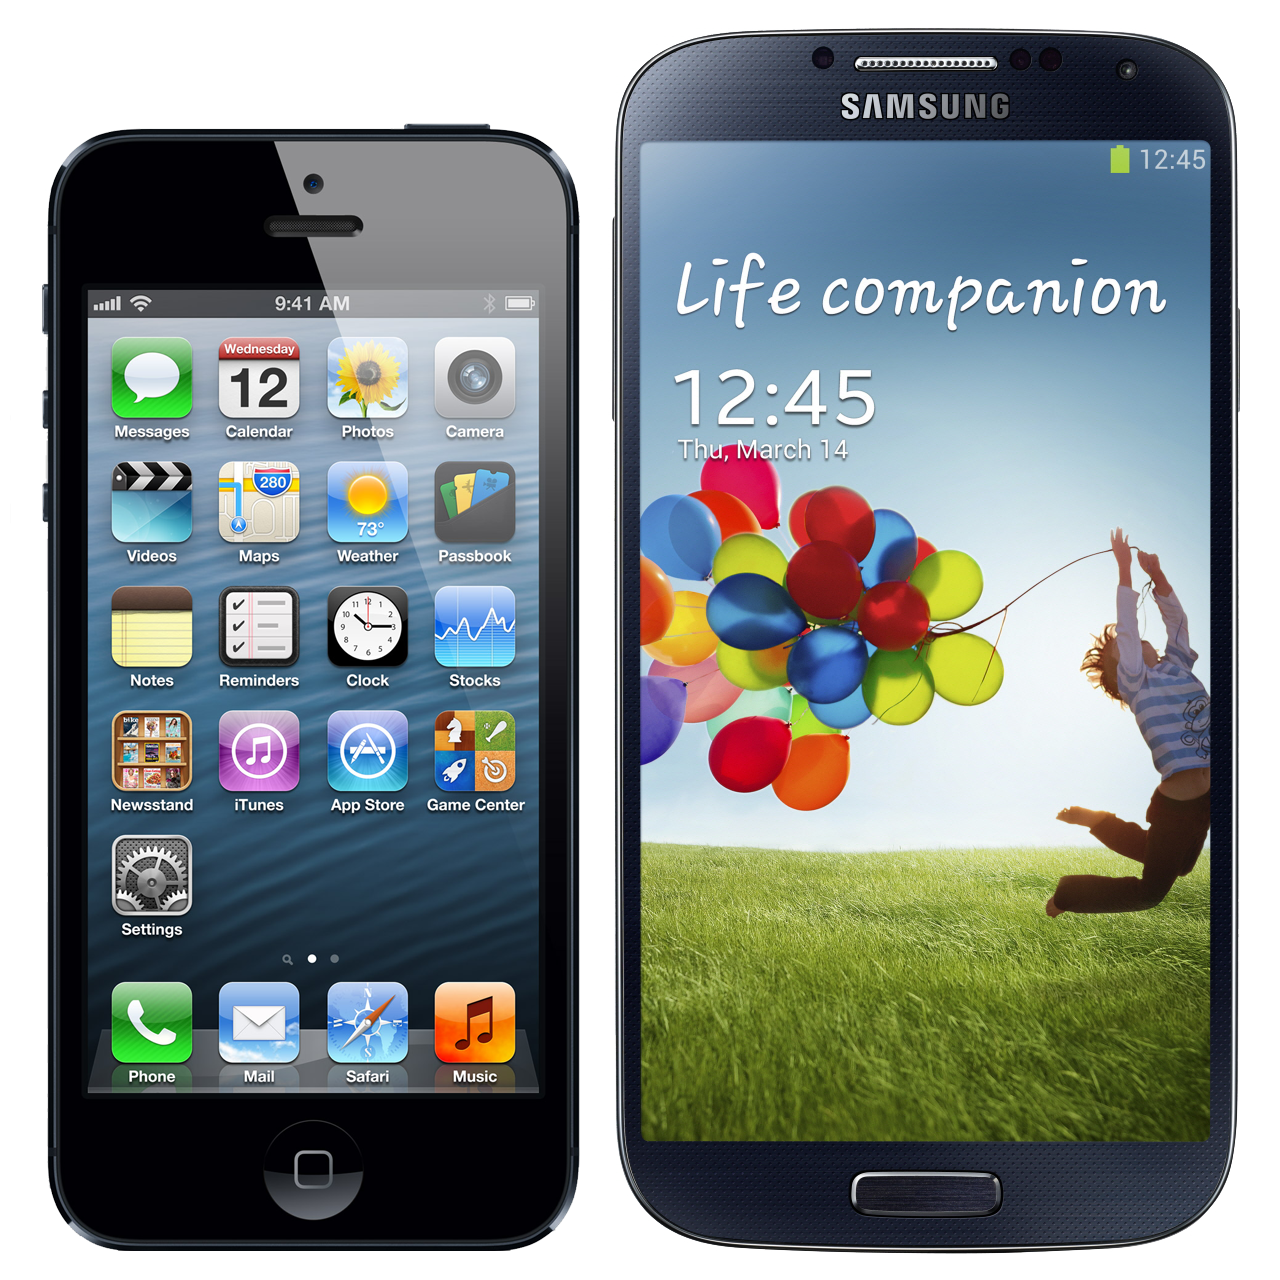 iPhone 5S vs Samsung Galaxy S4 - противостояние Android и iOS